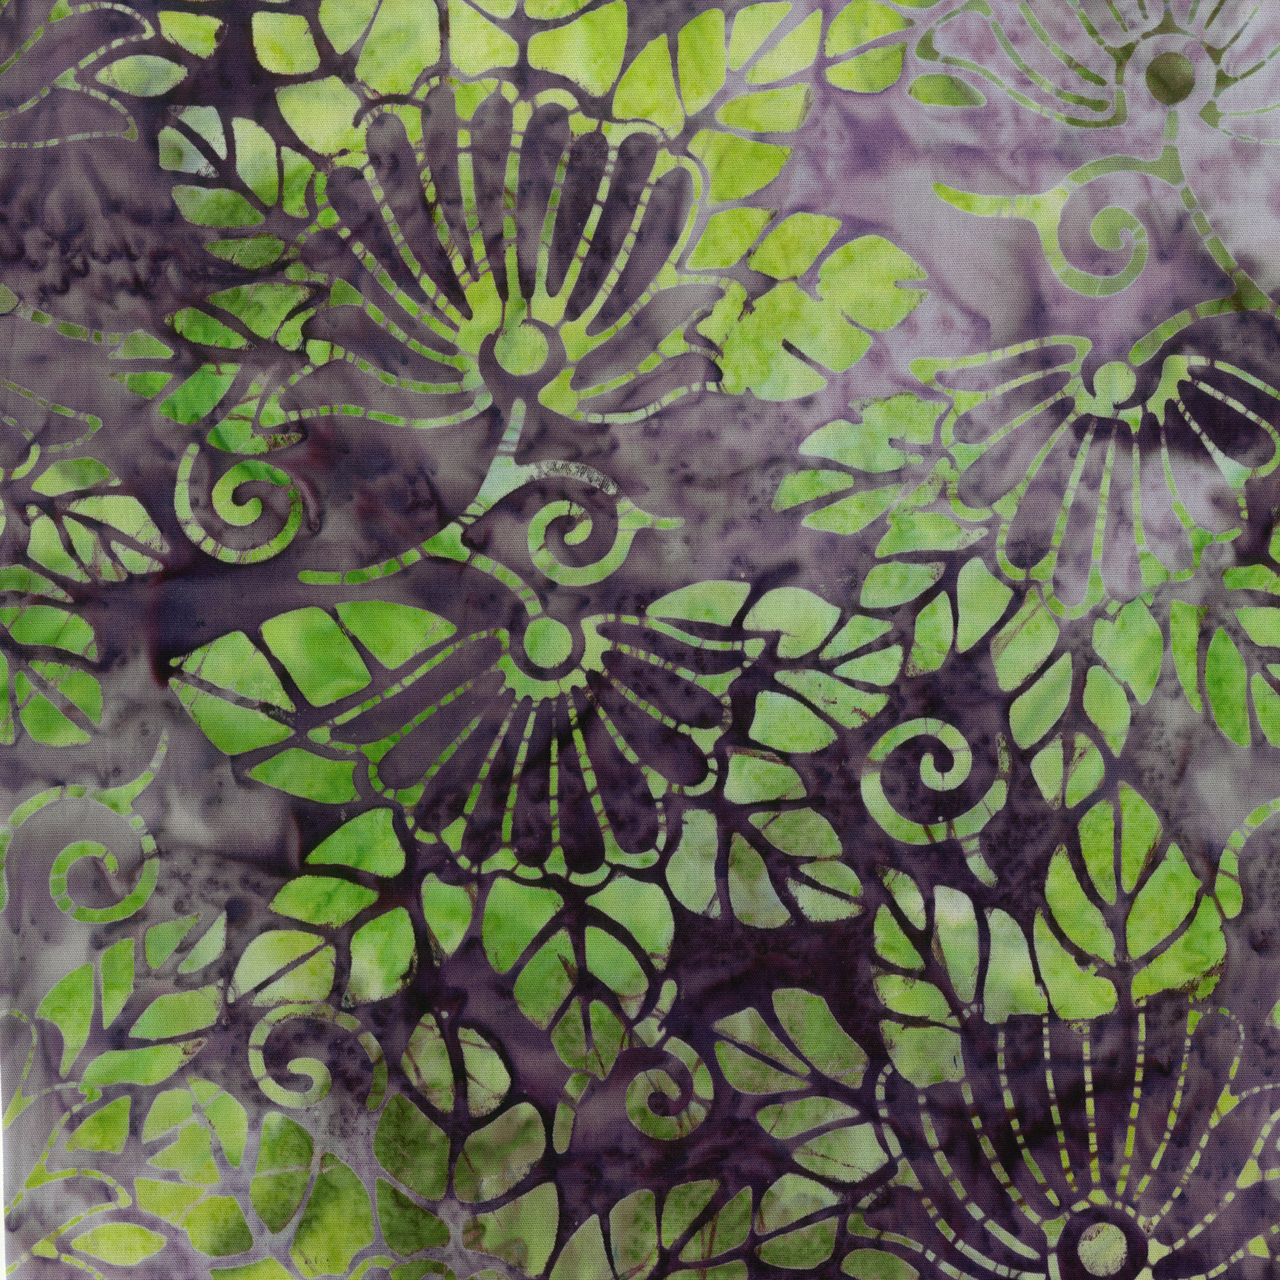 Anthology Water-Lily Pond 216Q-2